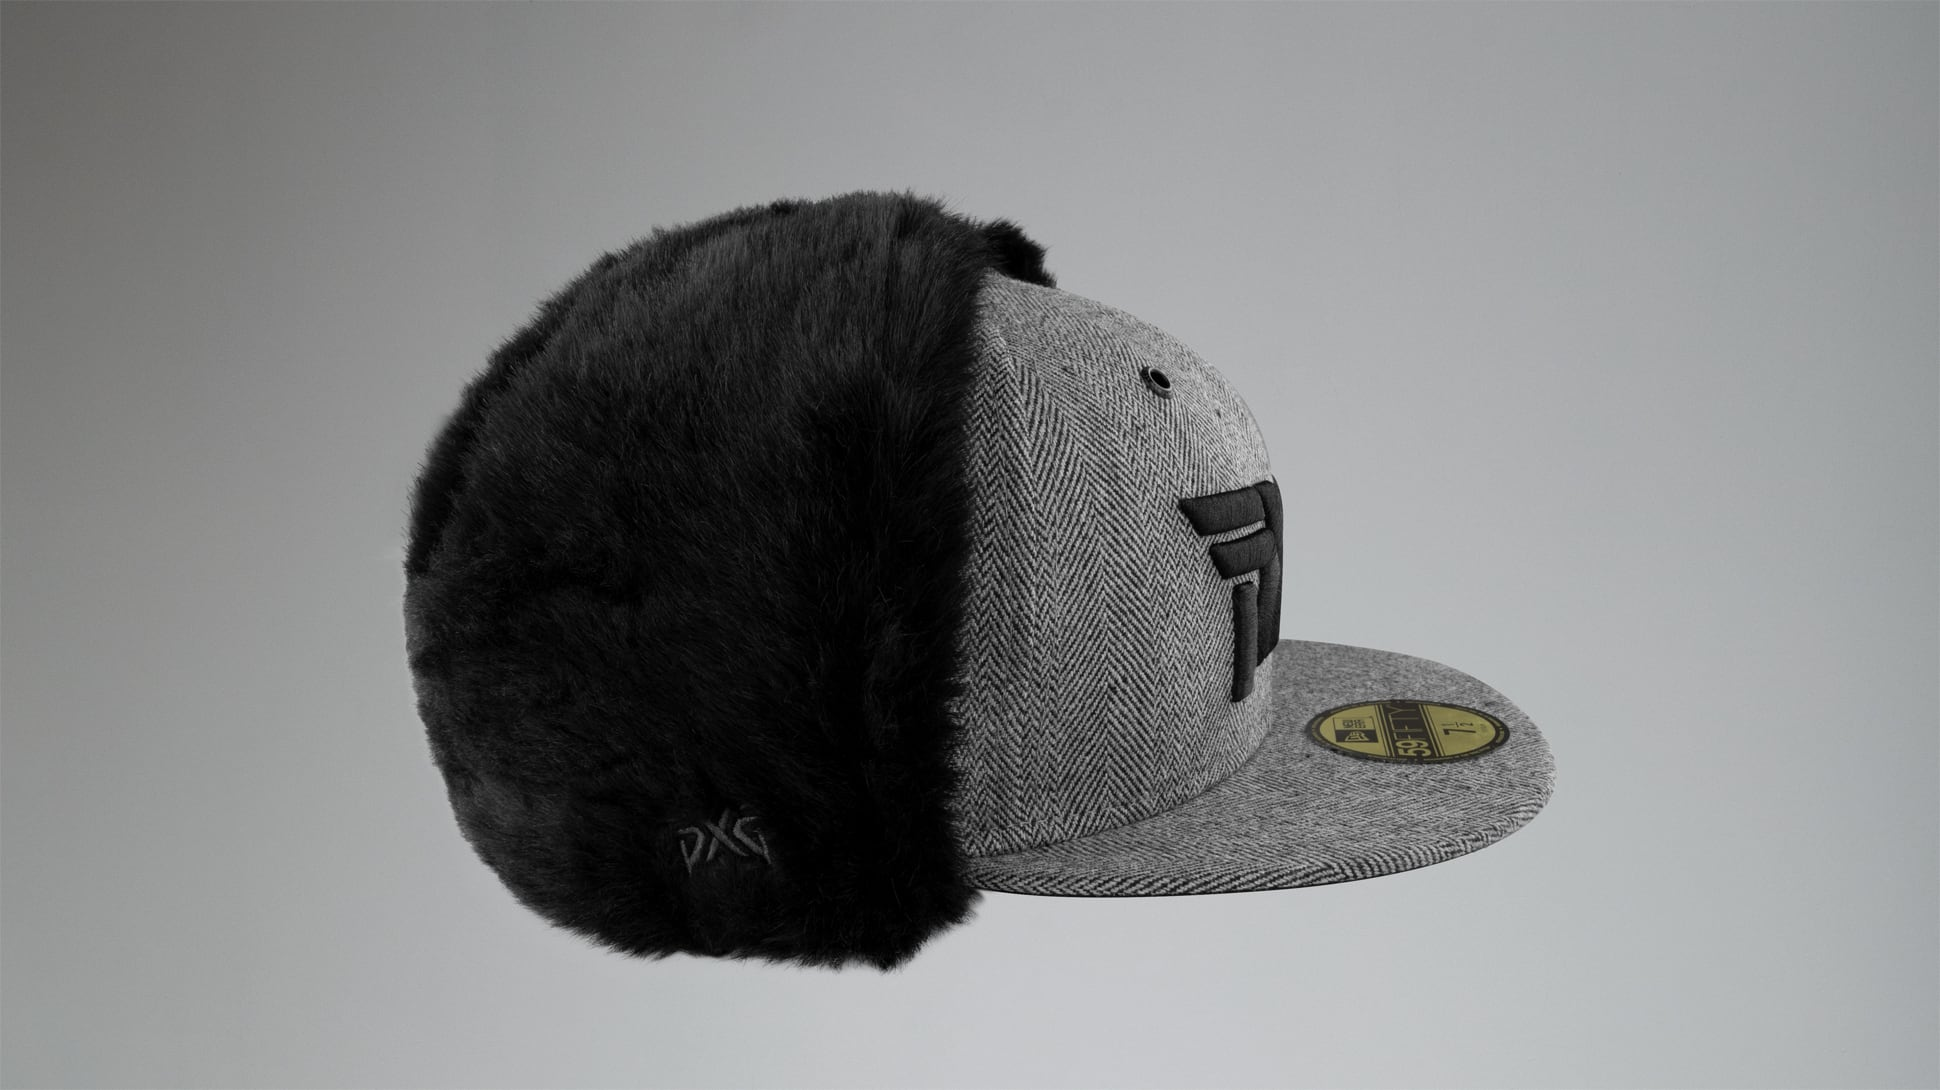 Dog Ear 59FIFTY Fitted Cap Image 6